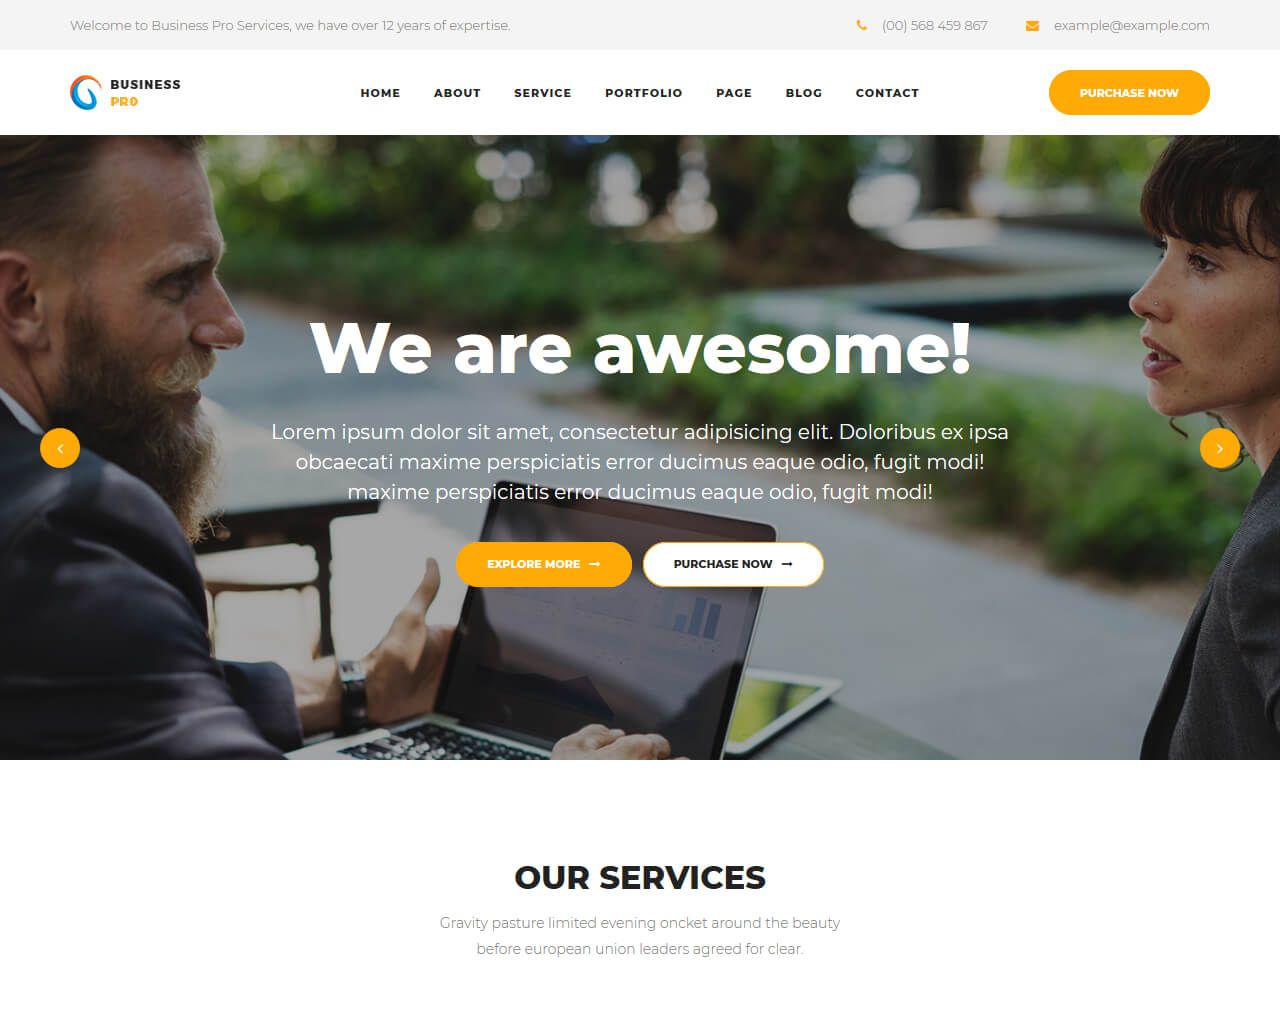 006 Impressive Professional Busines Website Template Free Download Wordpres Picture  WordpressFull